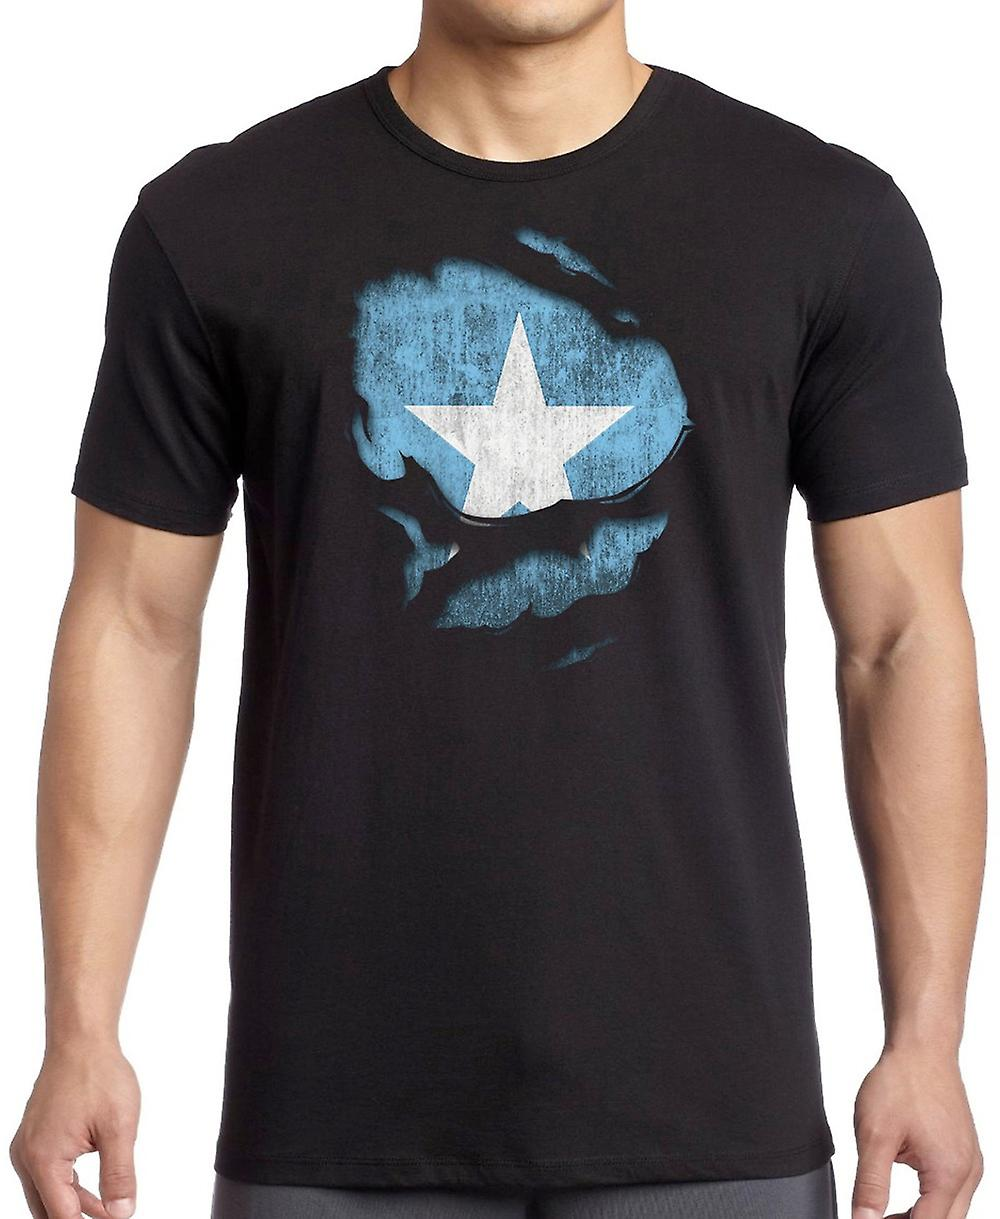 Somalia Ripped Effect Under Shirt T Shirt